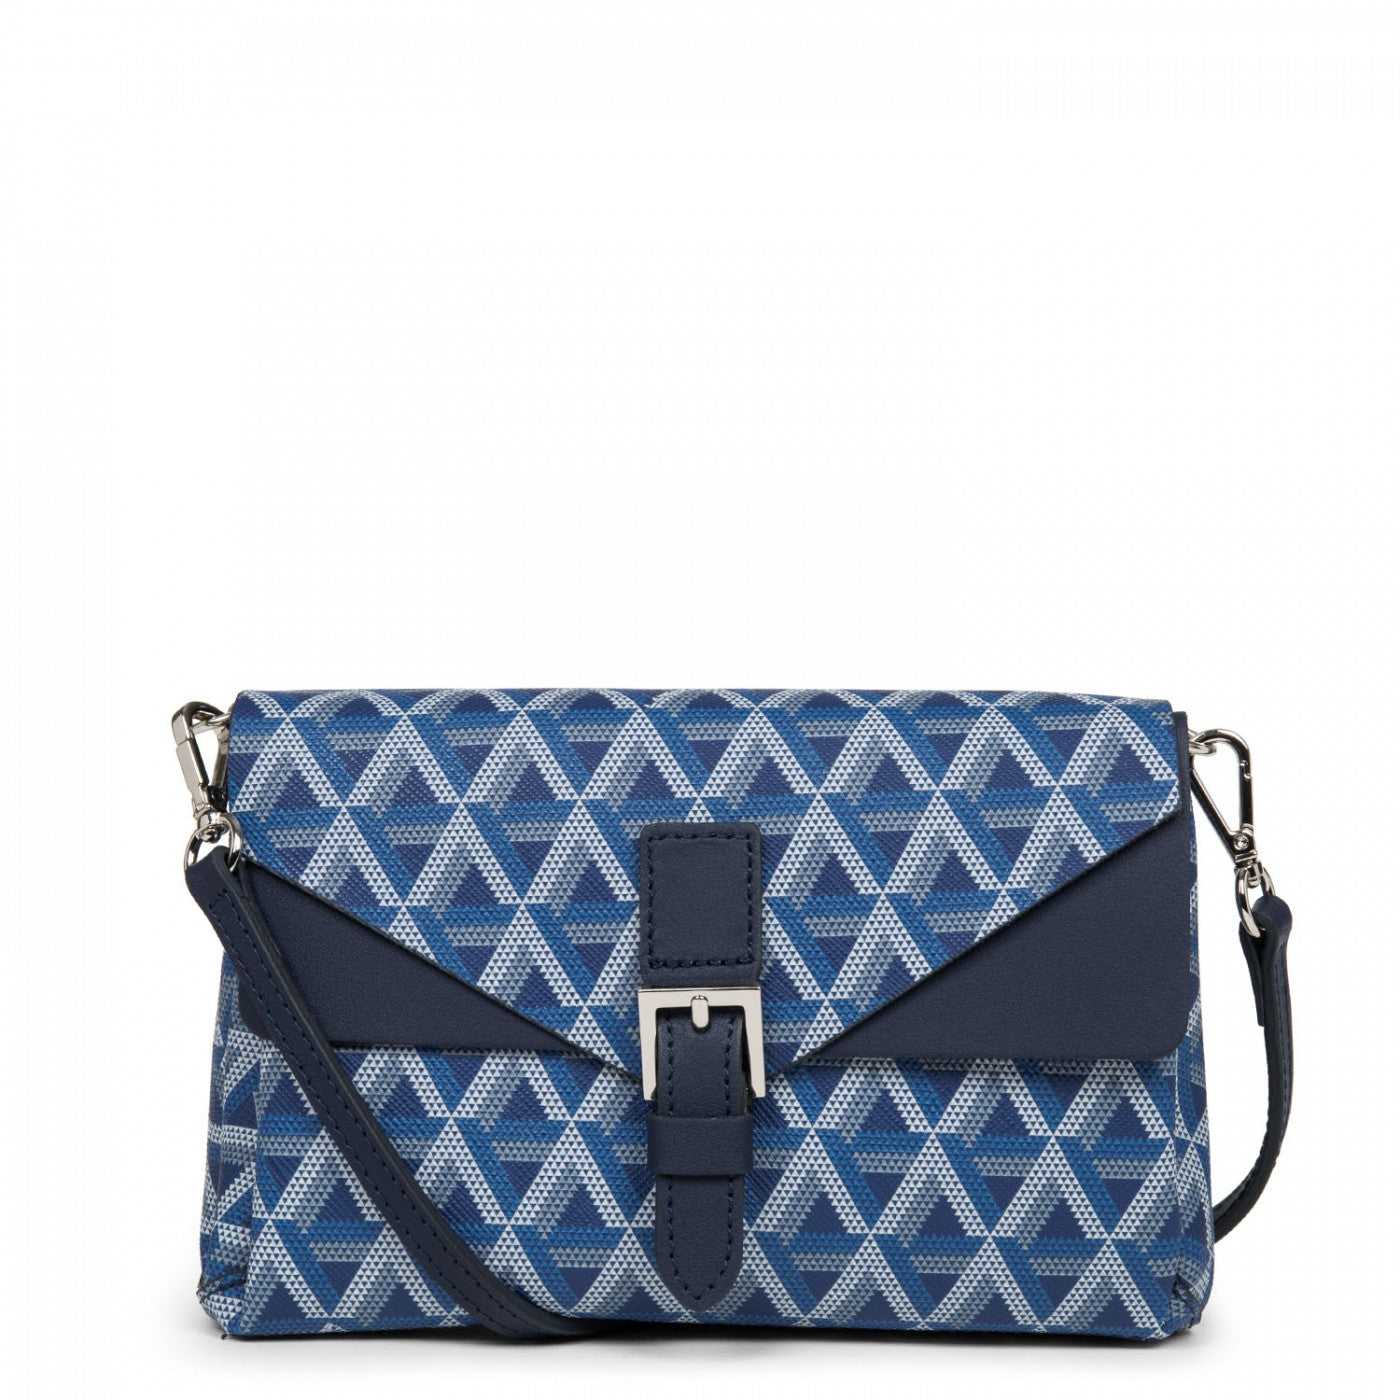 LANCASTER IKON SMALL CROSSBODY BAG - BLUE